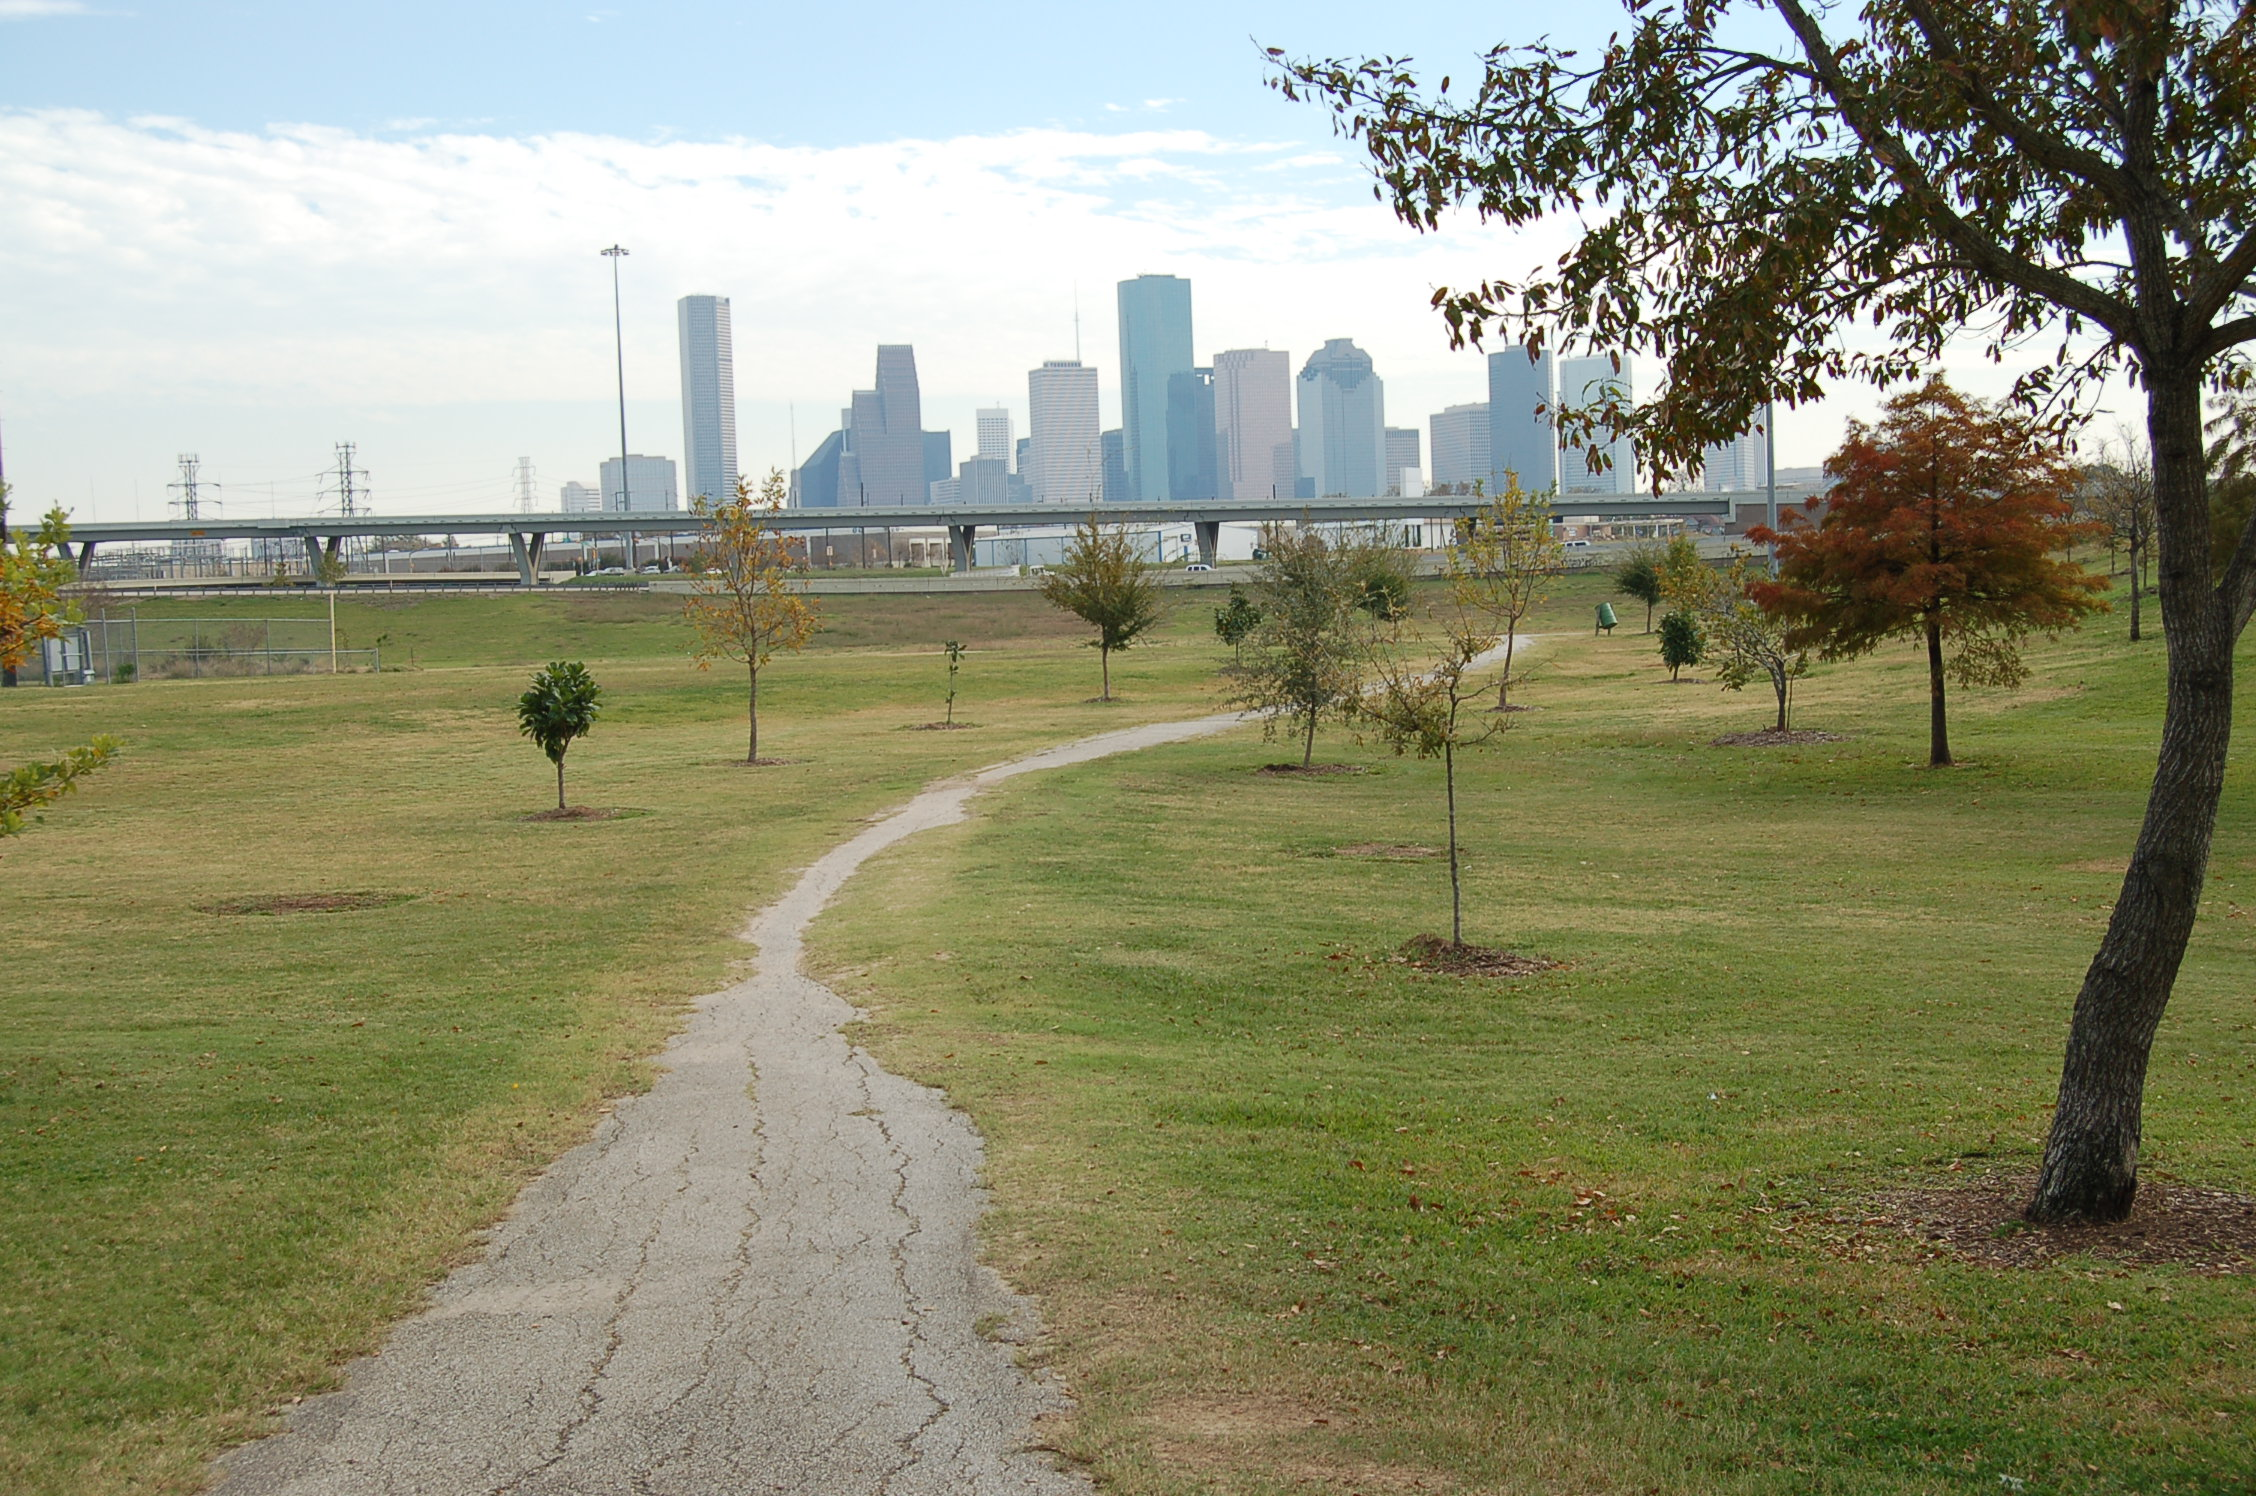 A view of the downtown Houston skyline from the White Oak Bayou Greenway Trail